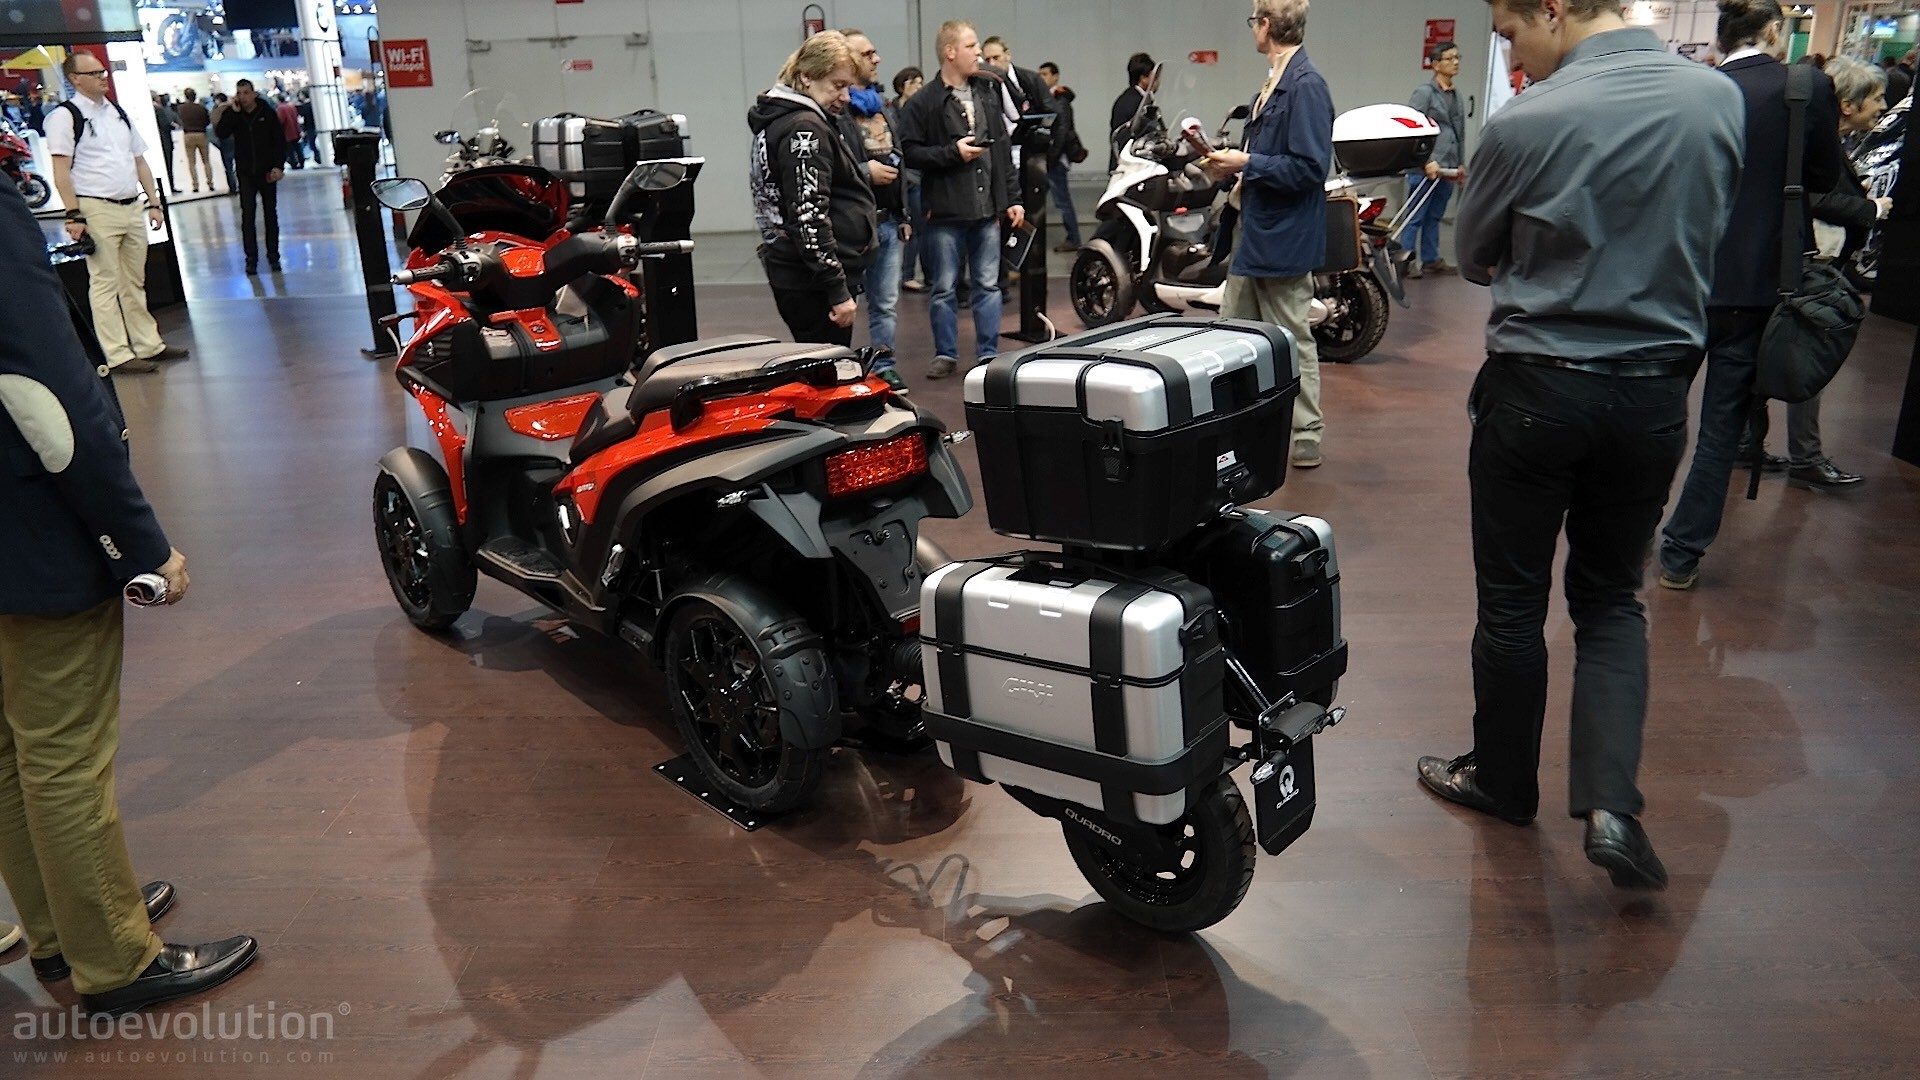 quadro rugged eicma becomes smart autoevolution